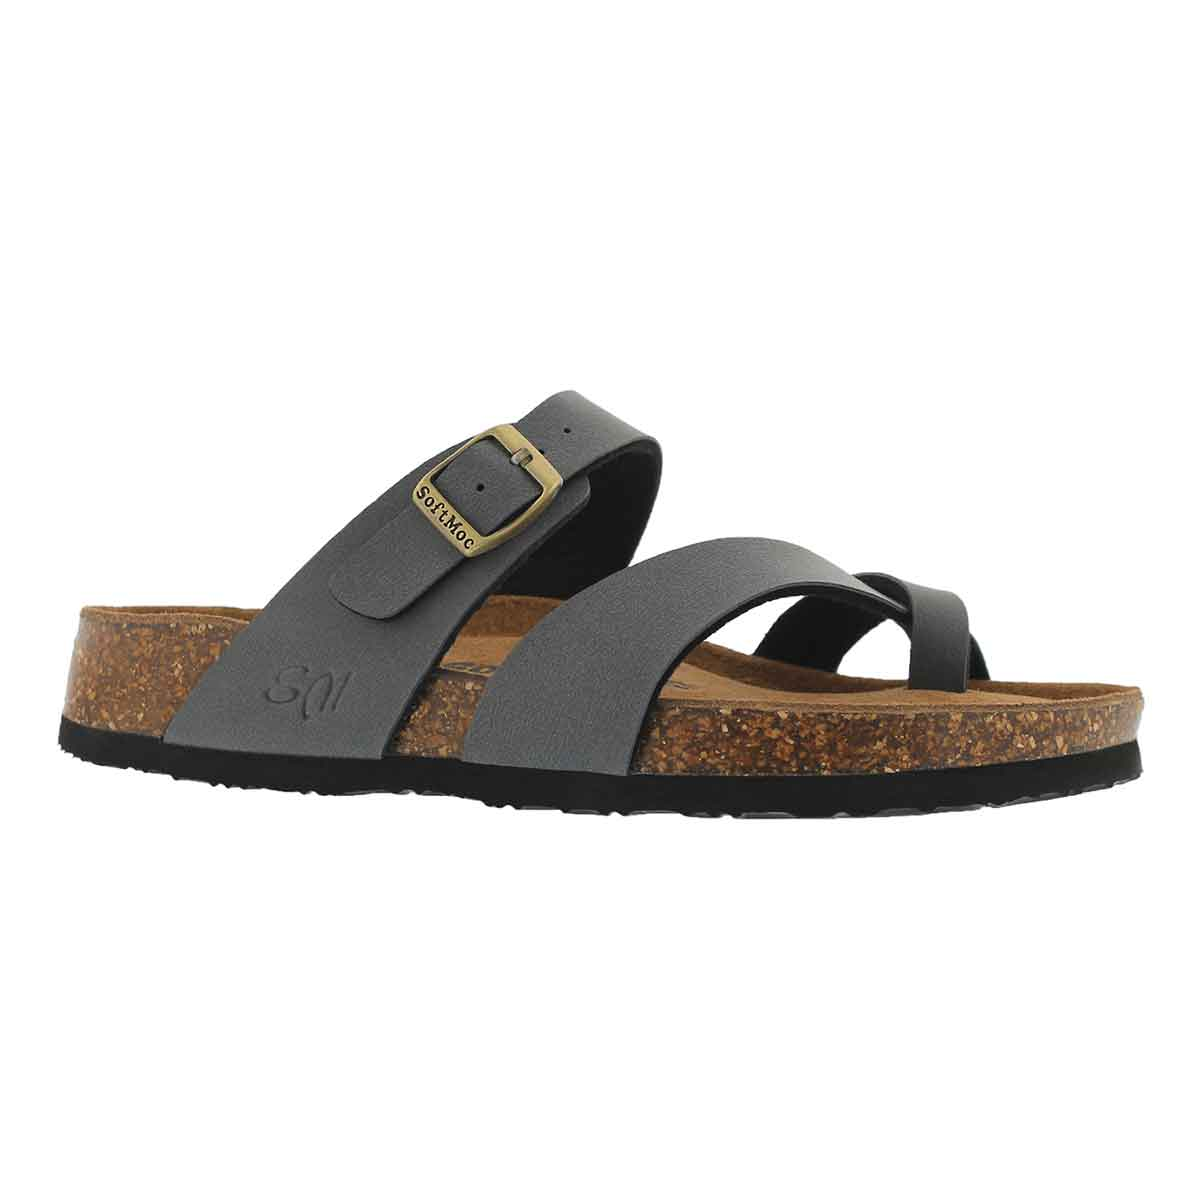 Women's ALICIA 5 PU grey memory foam sandals